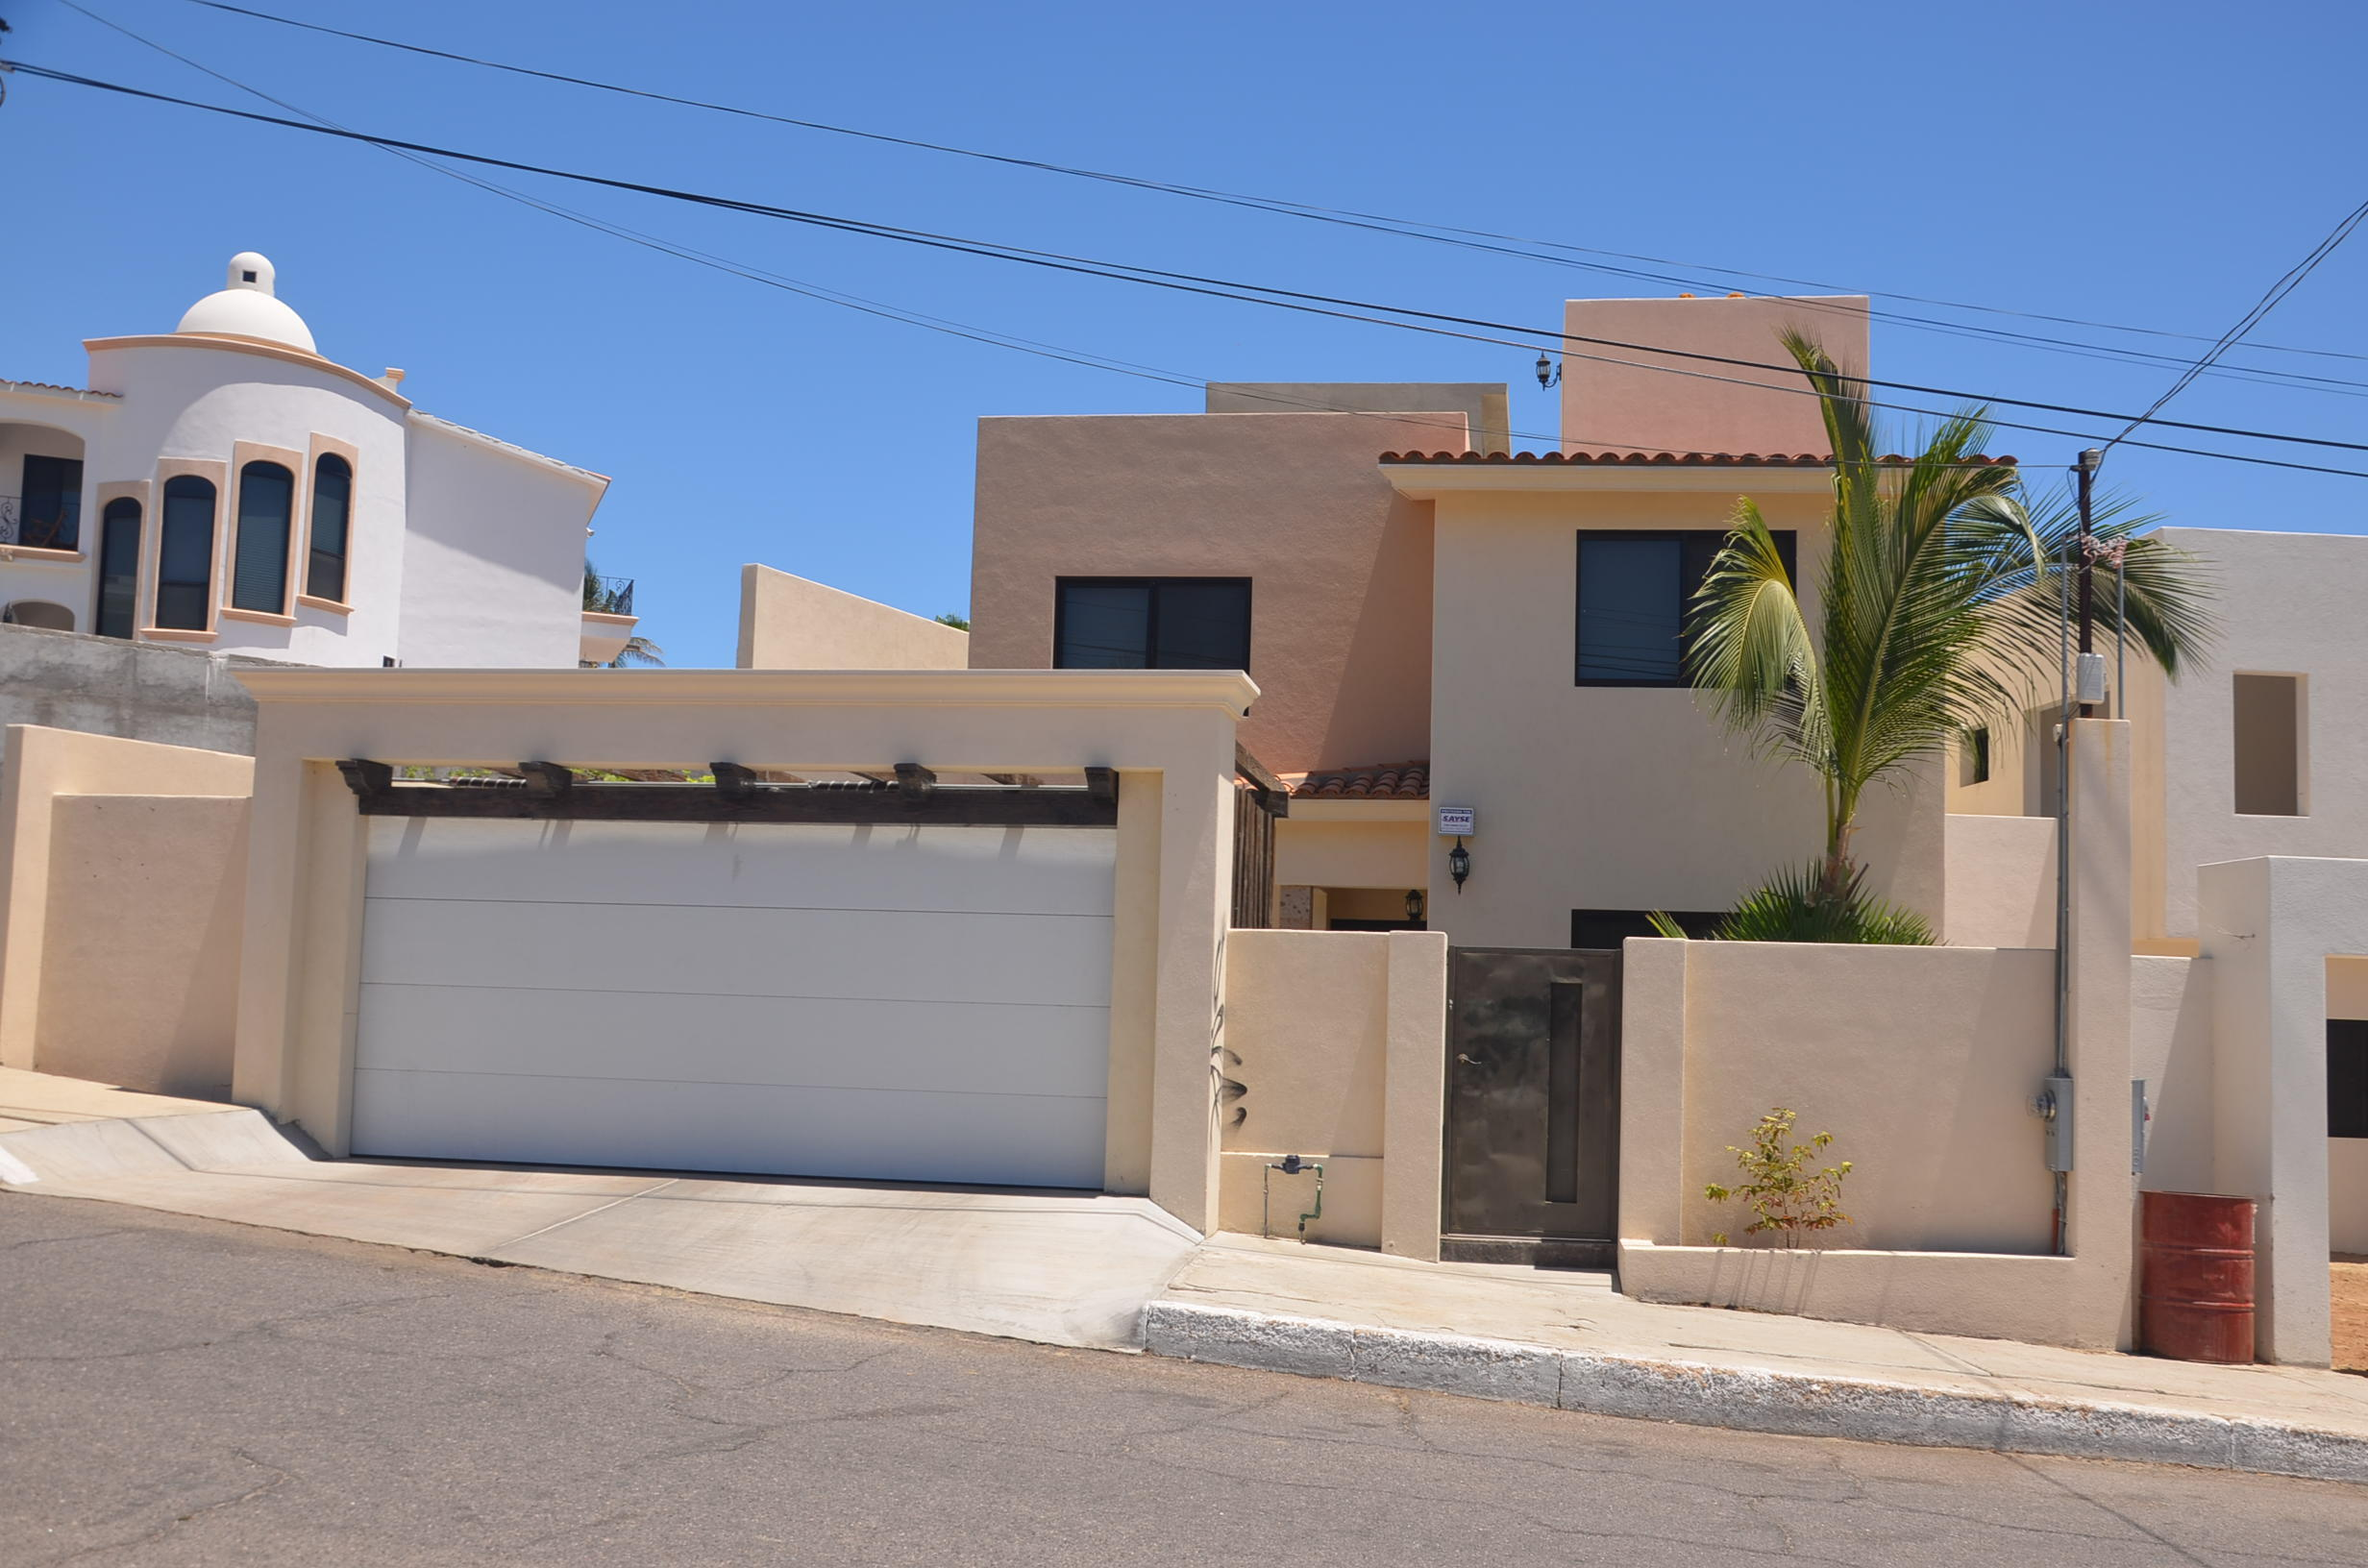 San Jose del Cabo, 5 Bedrooms Bedrooms, ,4 BathroomsBathrooms,House,For Sale,Marinos,15-1636